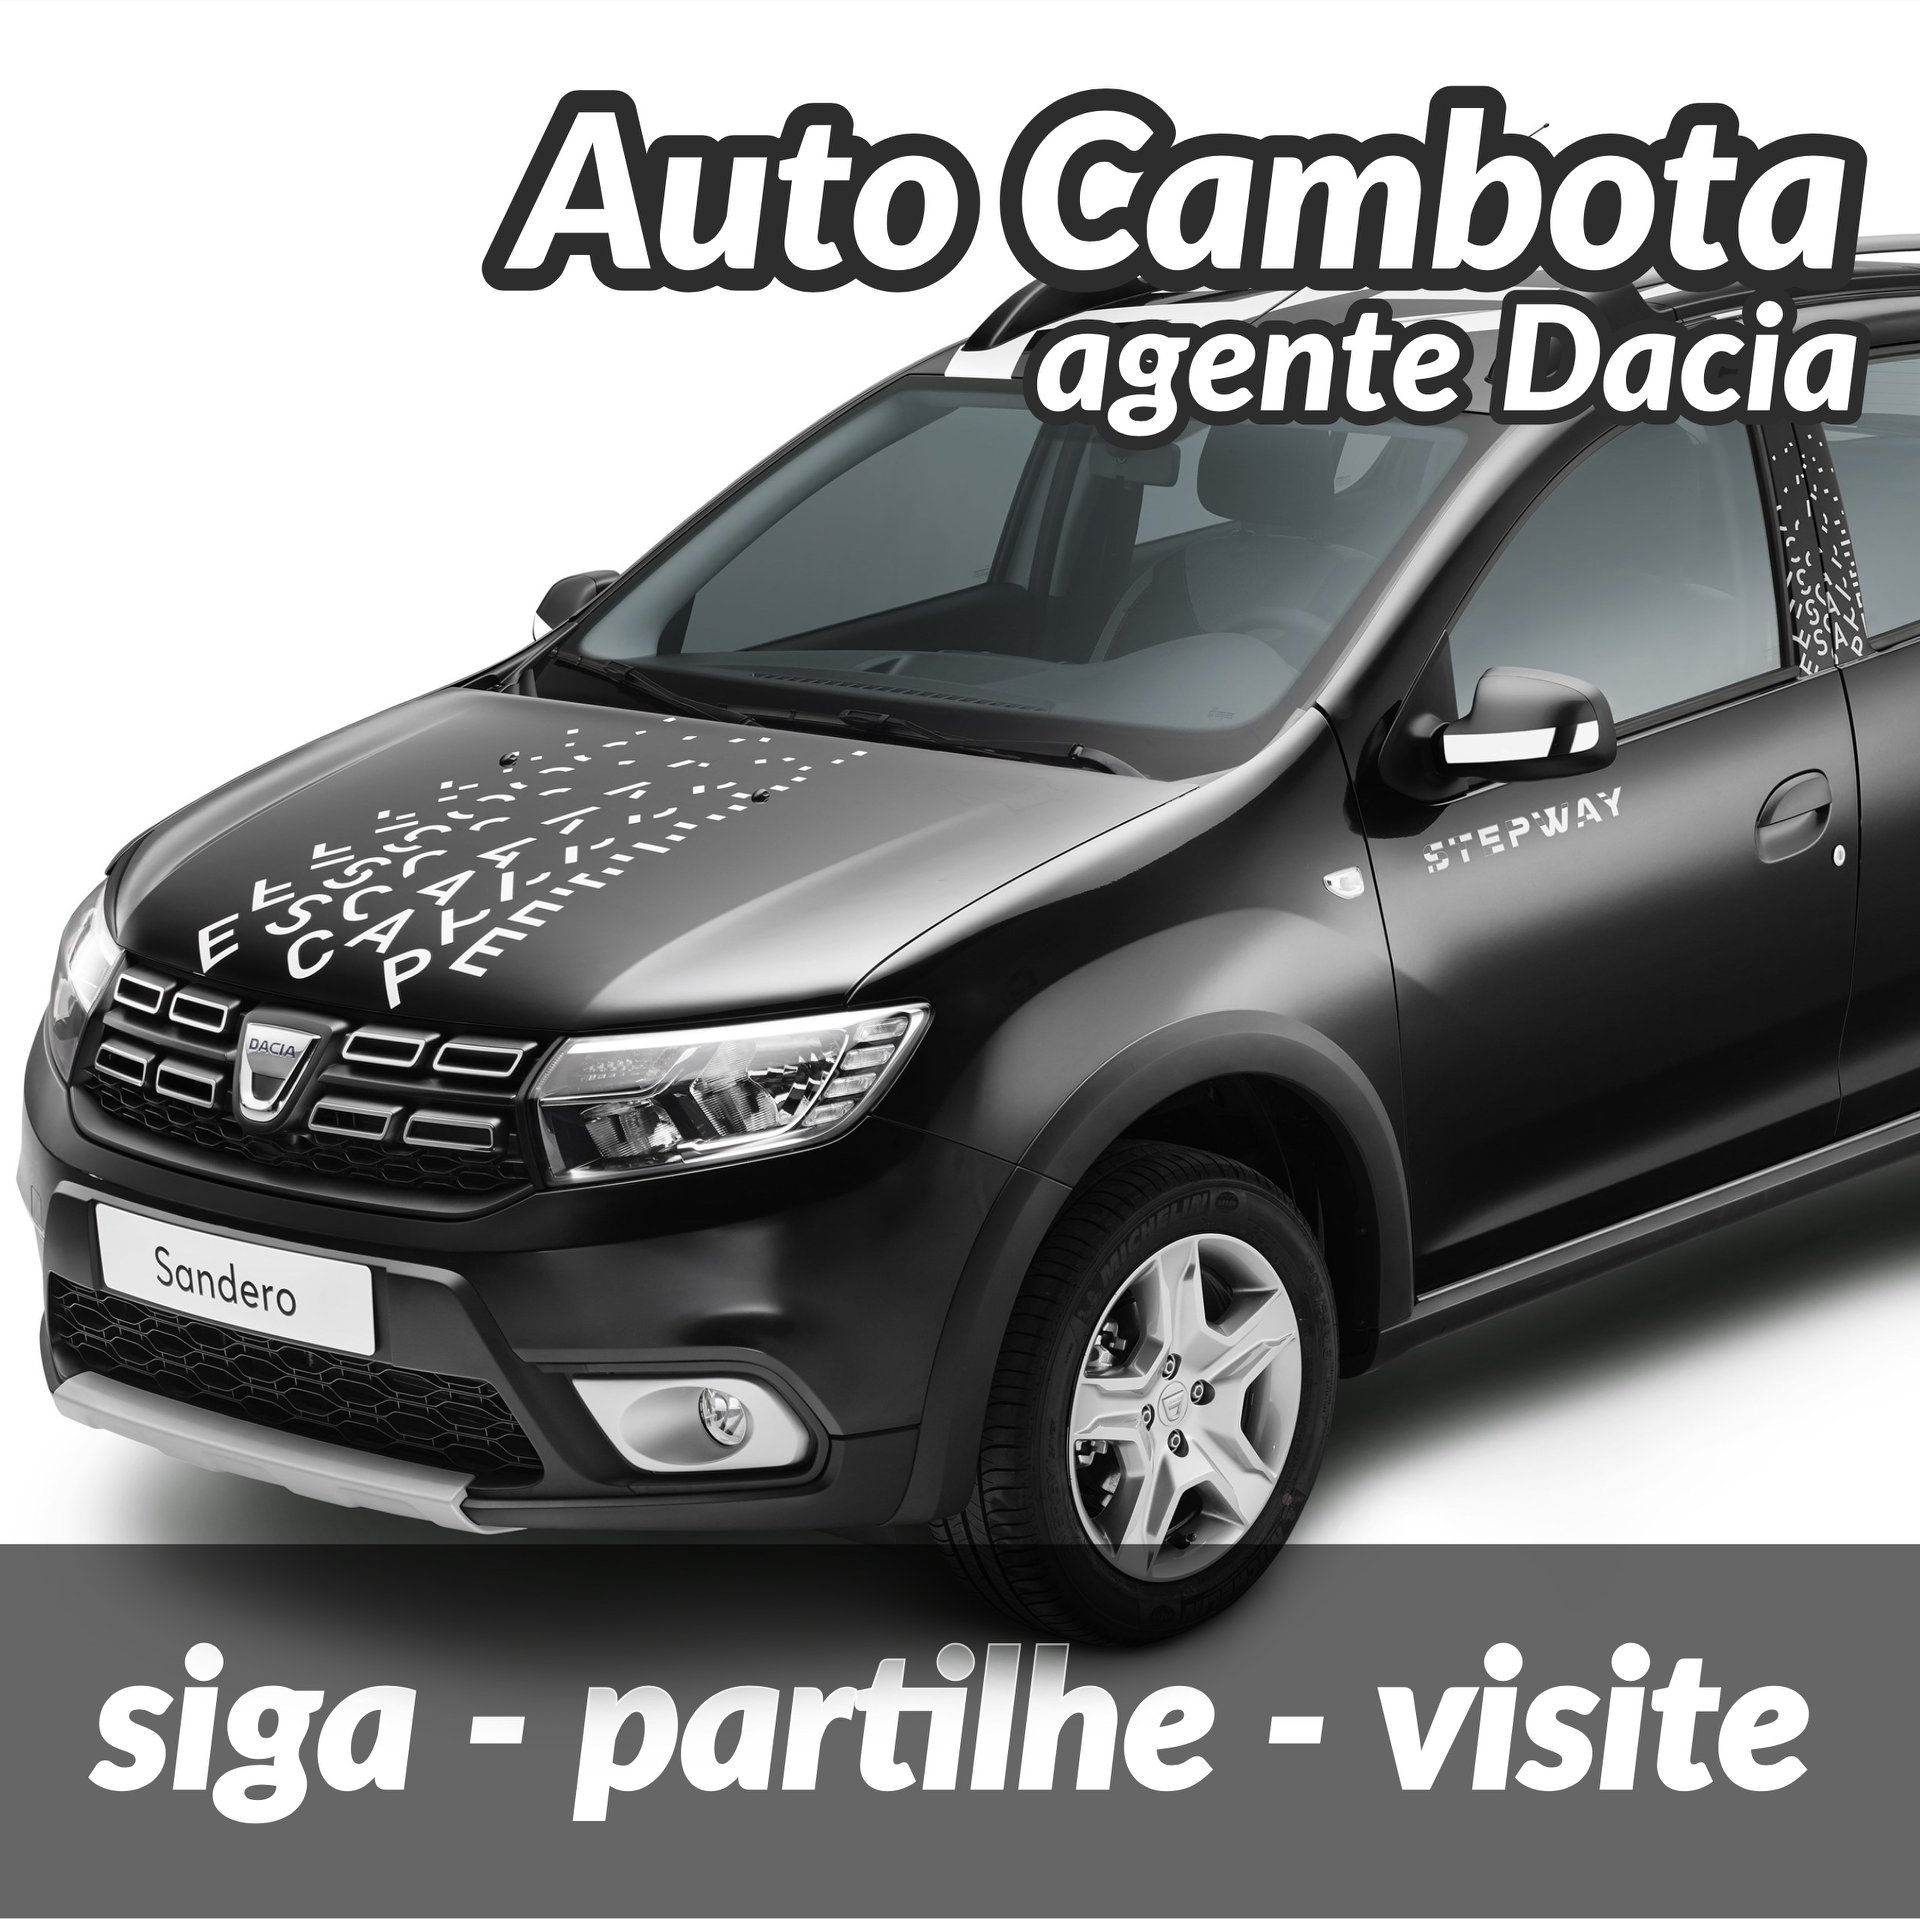 Dacia (Very Limited Edition)